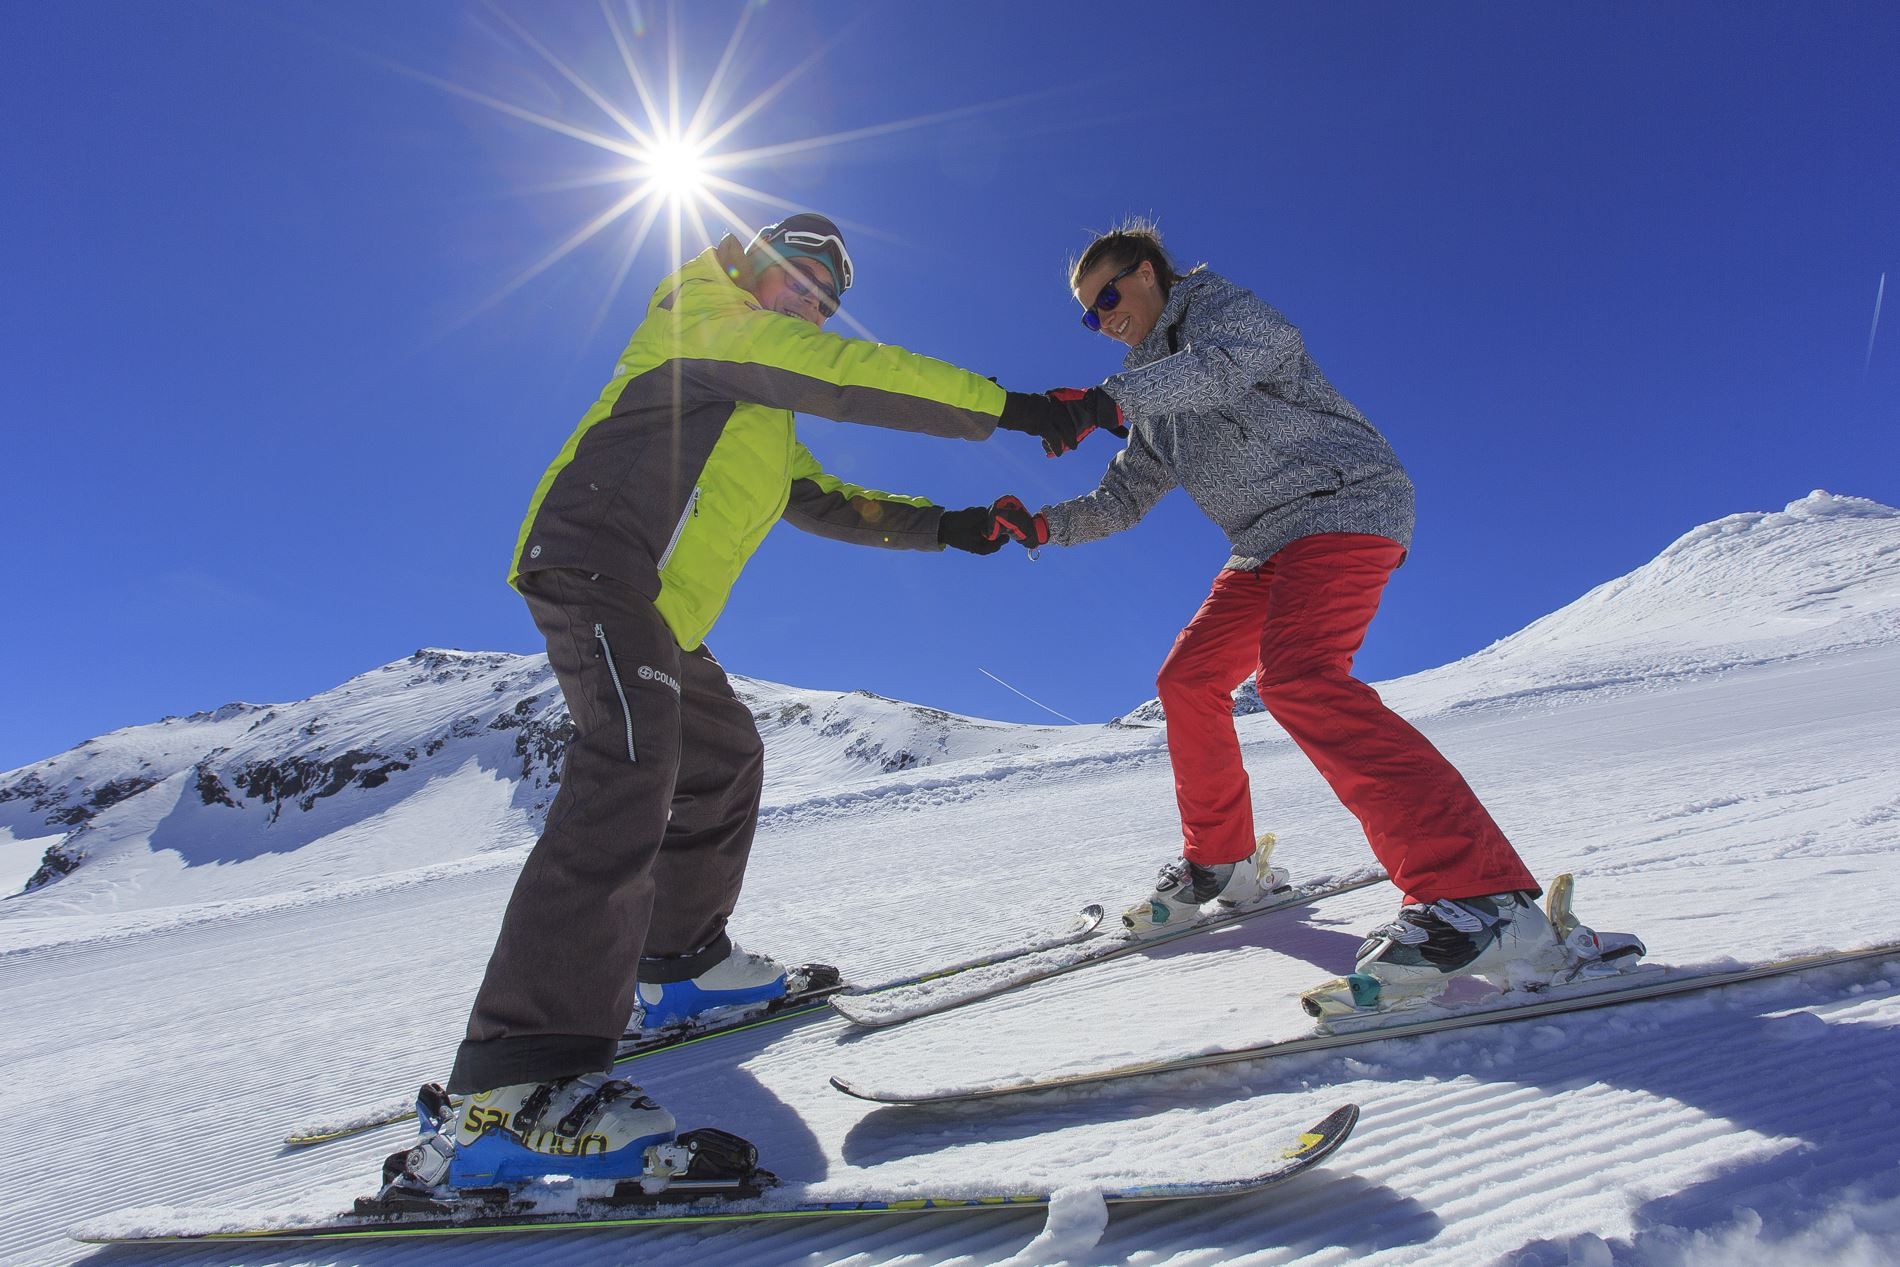 Group Ski Lessons for adults, 5 mornings